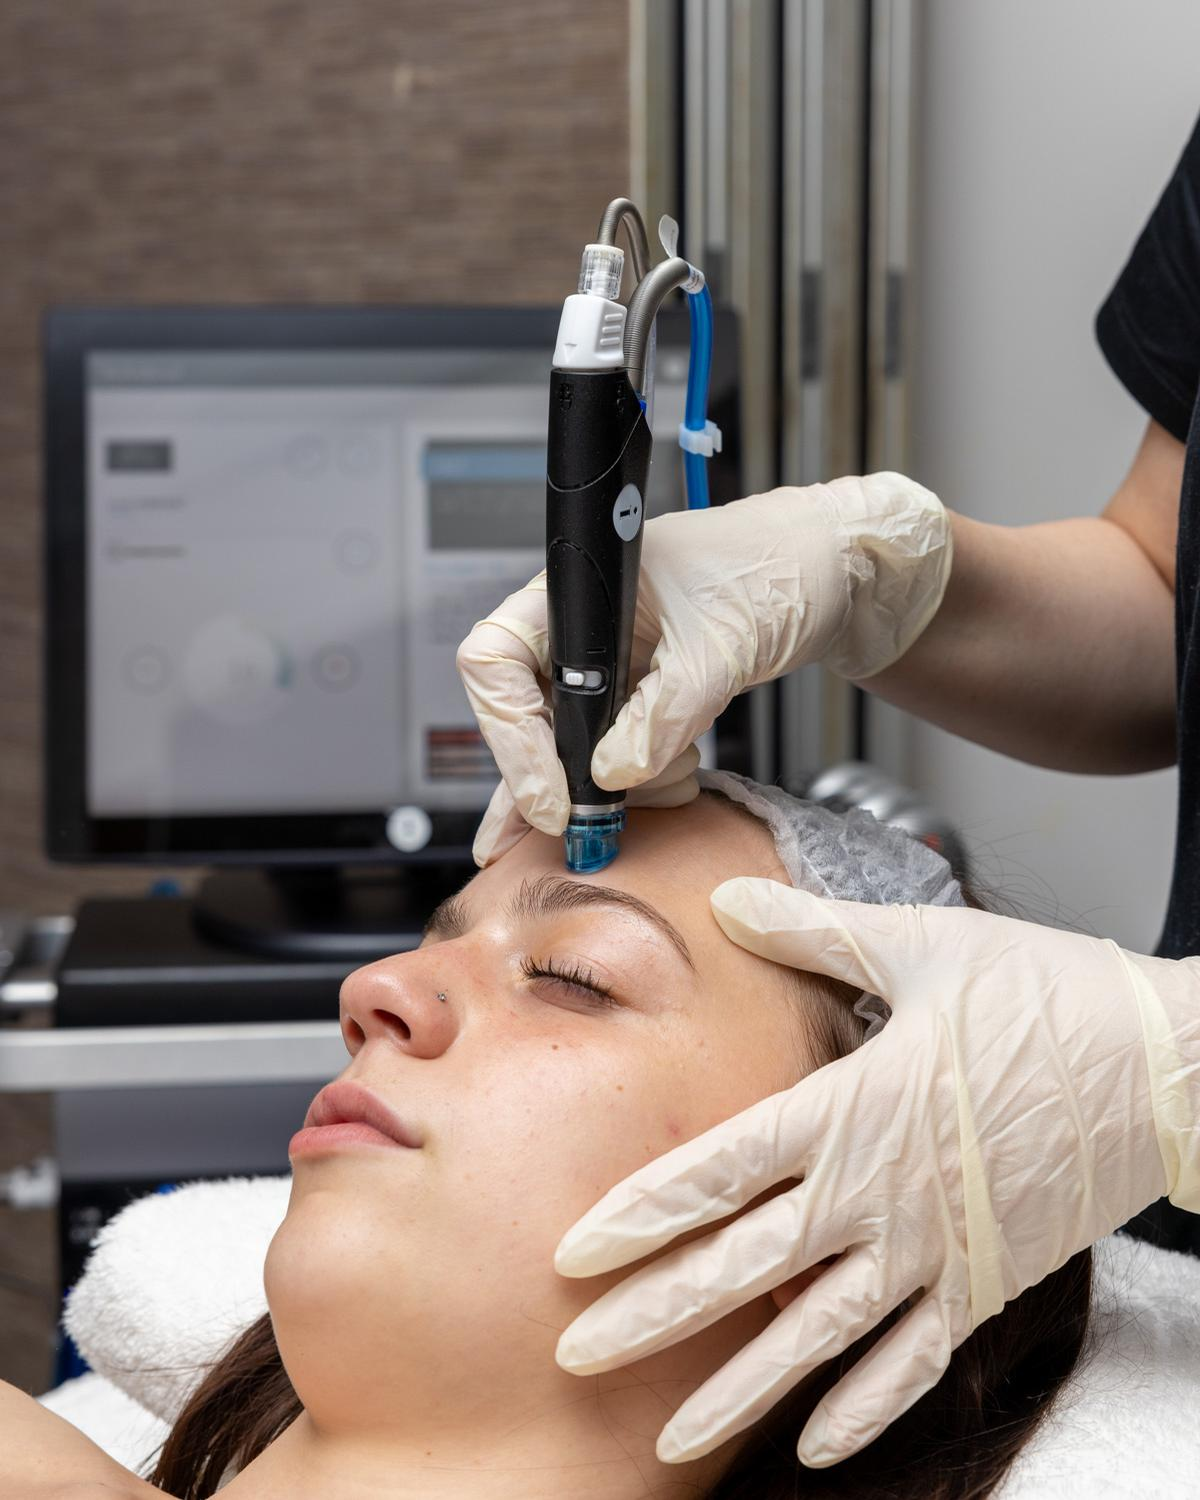 Deep cleanse featuring HydraFacial's patented vortex technology / HydraFacial, 2021